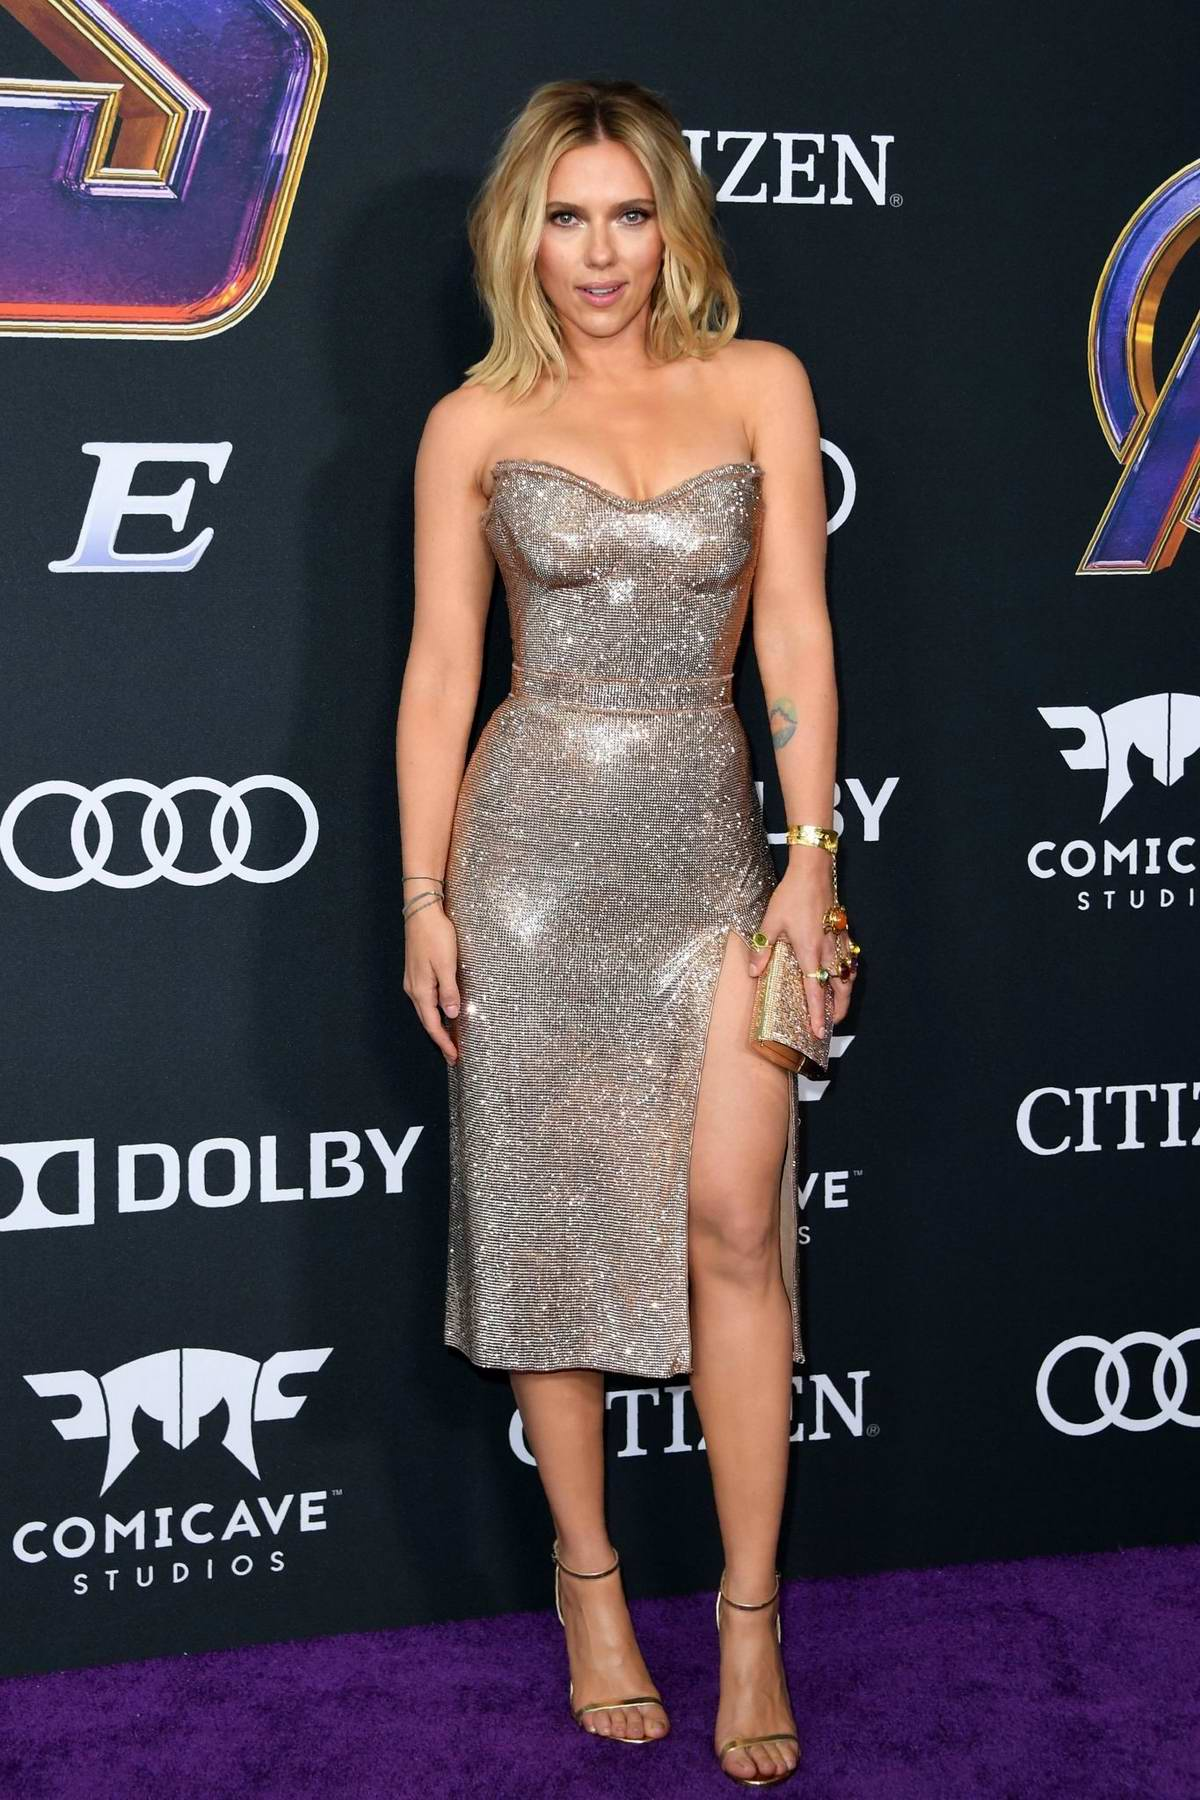 Scarlett Johansson Attends The World Premiere Of Avengers Endgame At The La Convention Center In Los